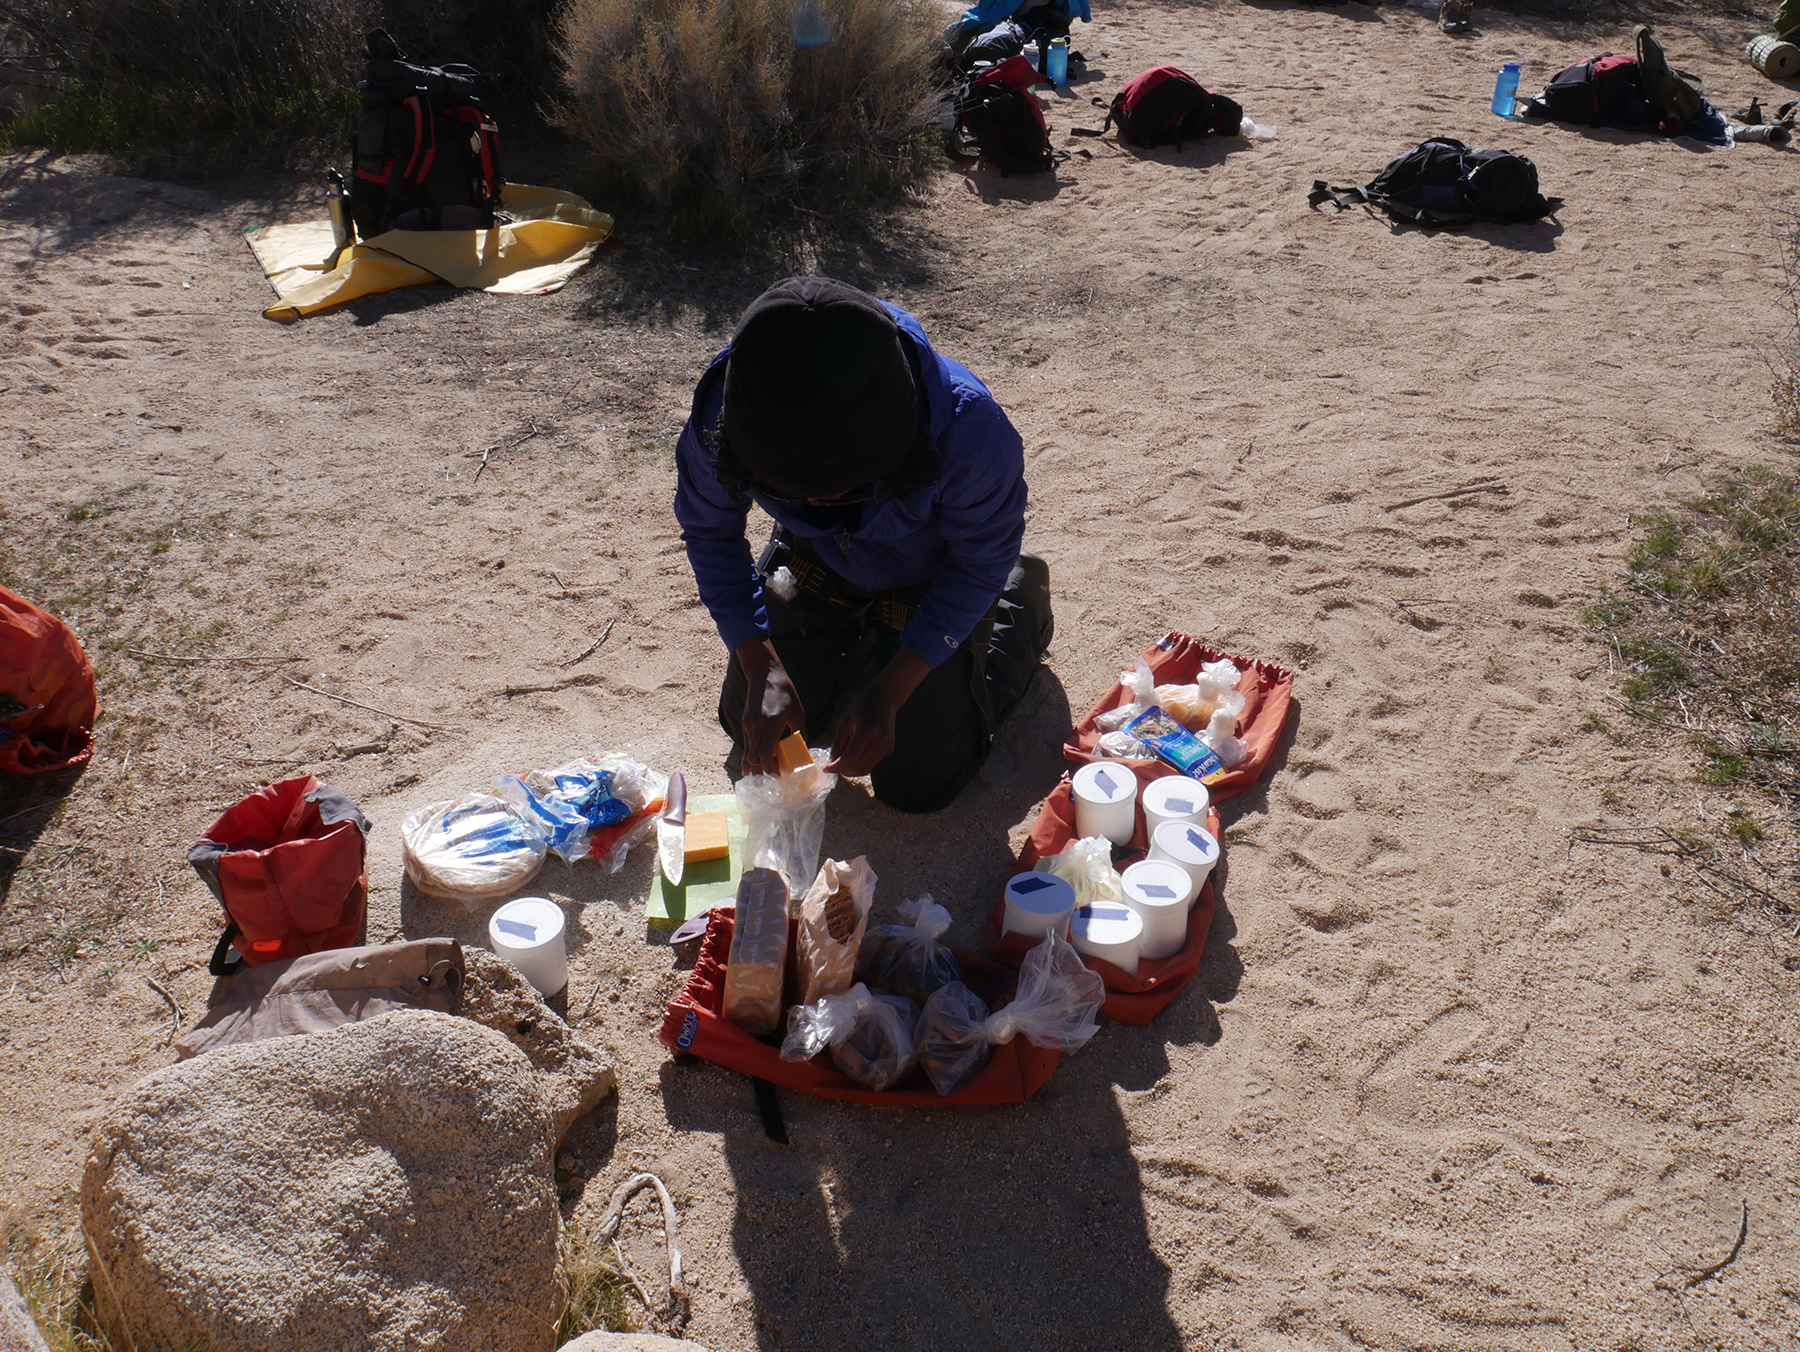 Felistus, assembling lunch for the rest of the backpacking group.